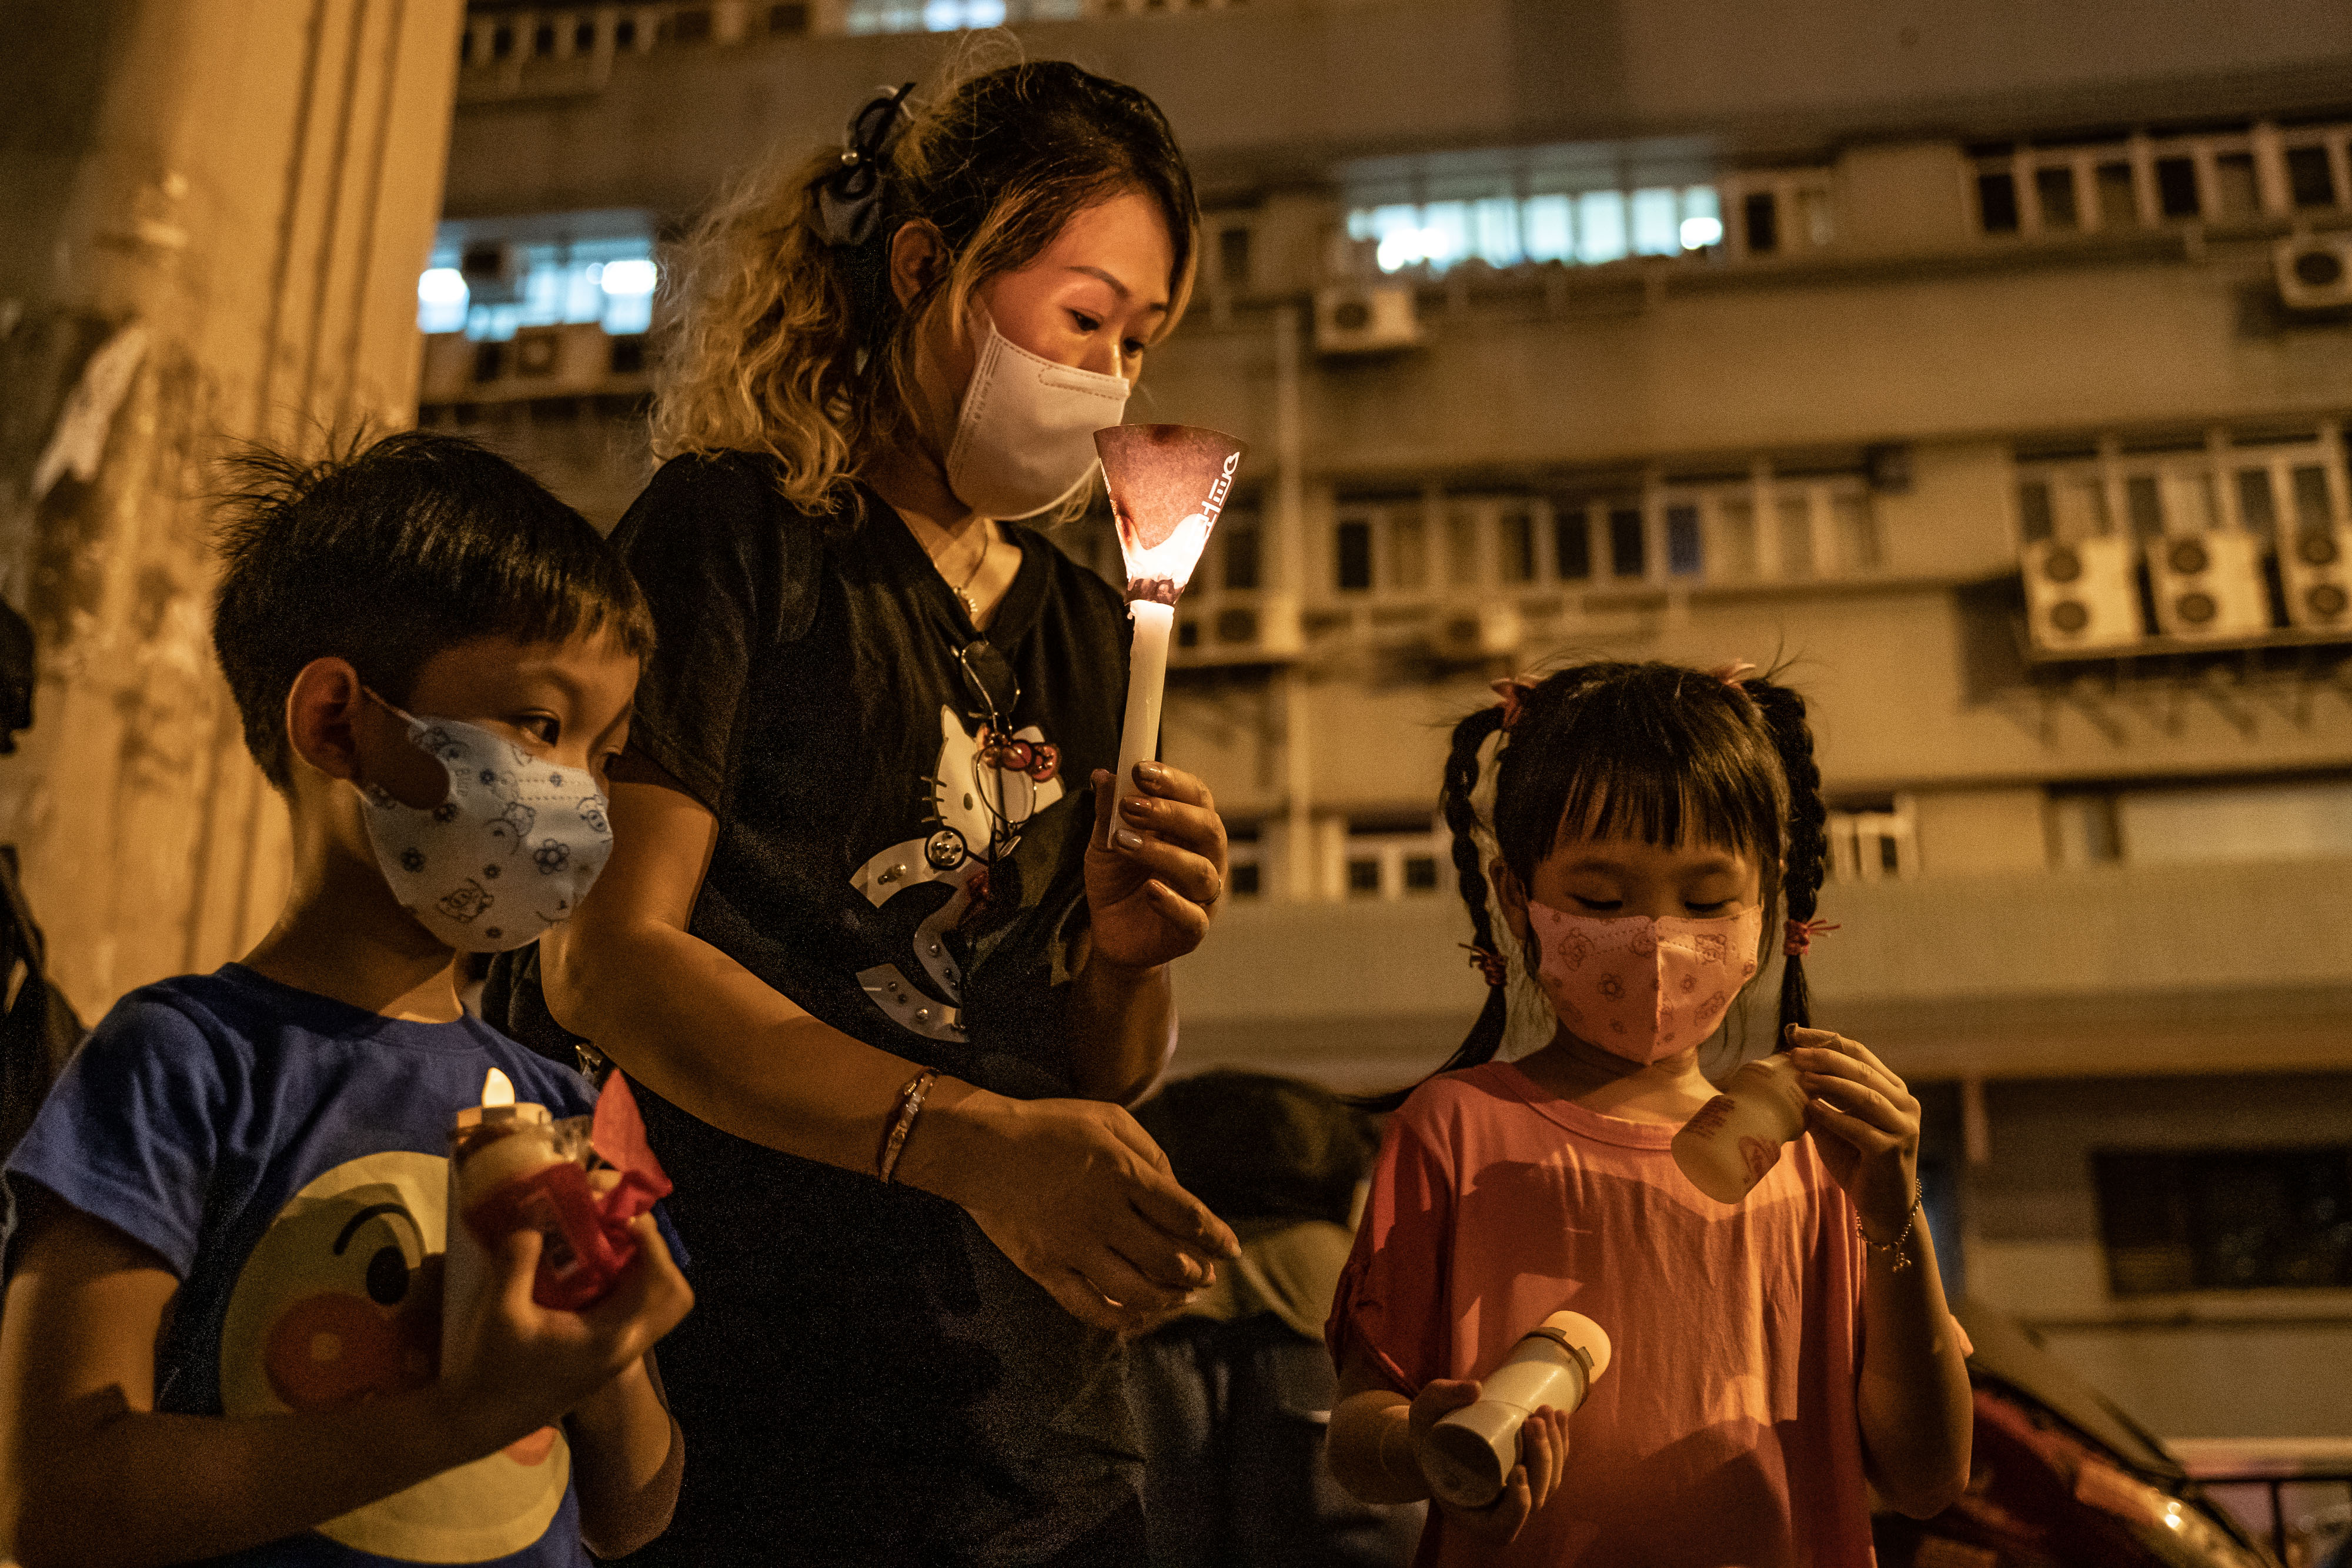 Pro-democracy activists take part in a rally on the eve of Tiananmen Square Massacre candlelight vigil commemoration outside of the Lai Chi Kok Reception Centre on June 3, 2020 in Hong Kong. (Photo by Anthony Kwan/Getty Images)